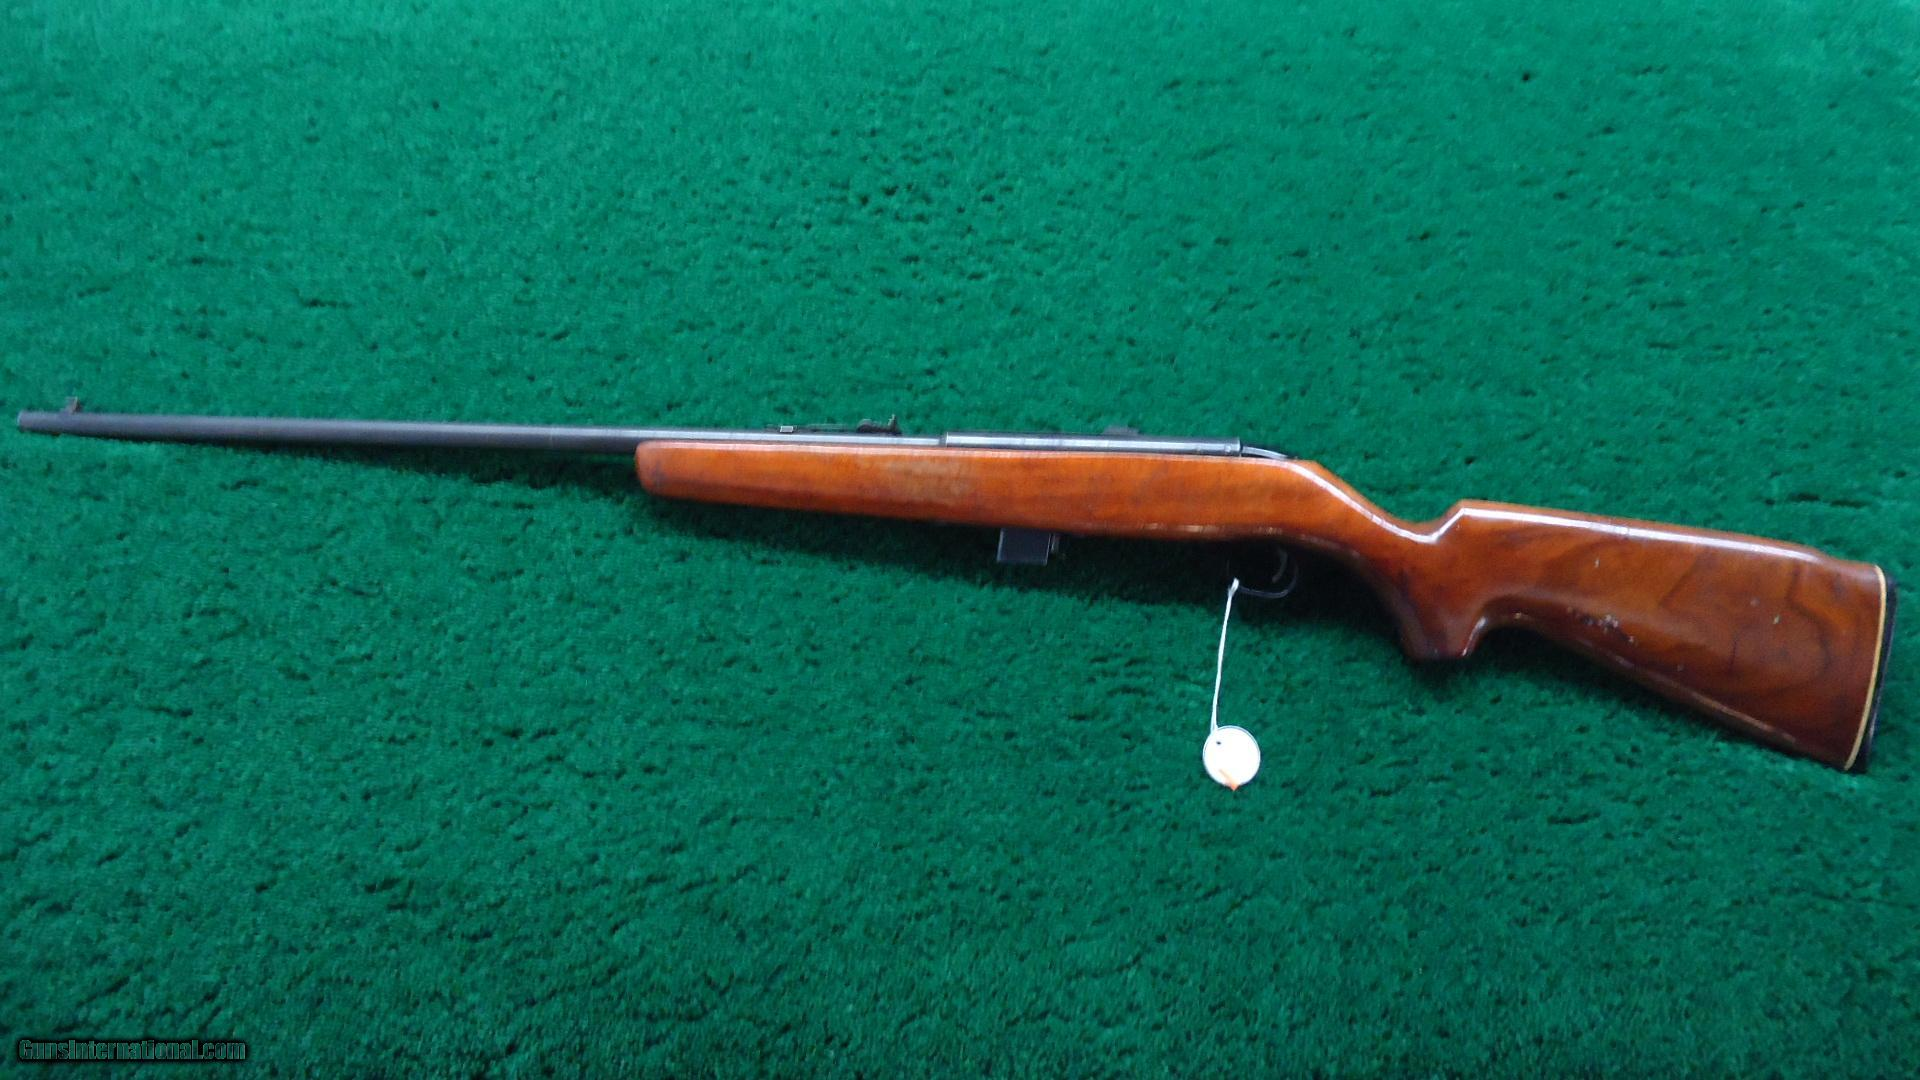 ... MOSSBERG TARGO MODEL 340 TR IN .22 CALIBER SMOOTH BORE - 14 of 15 ...